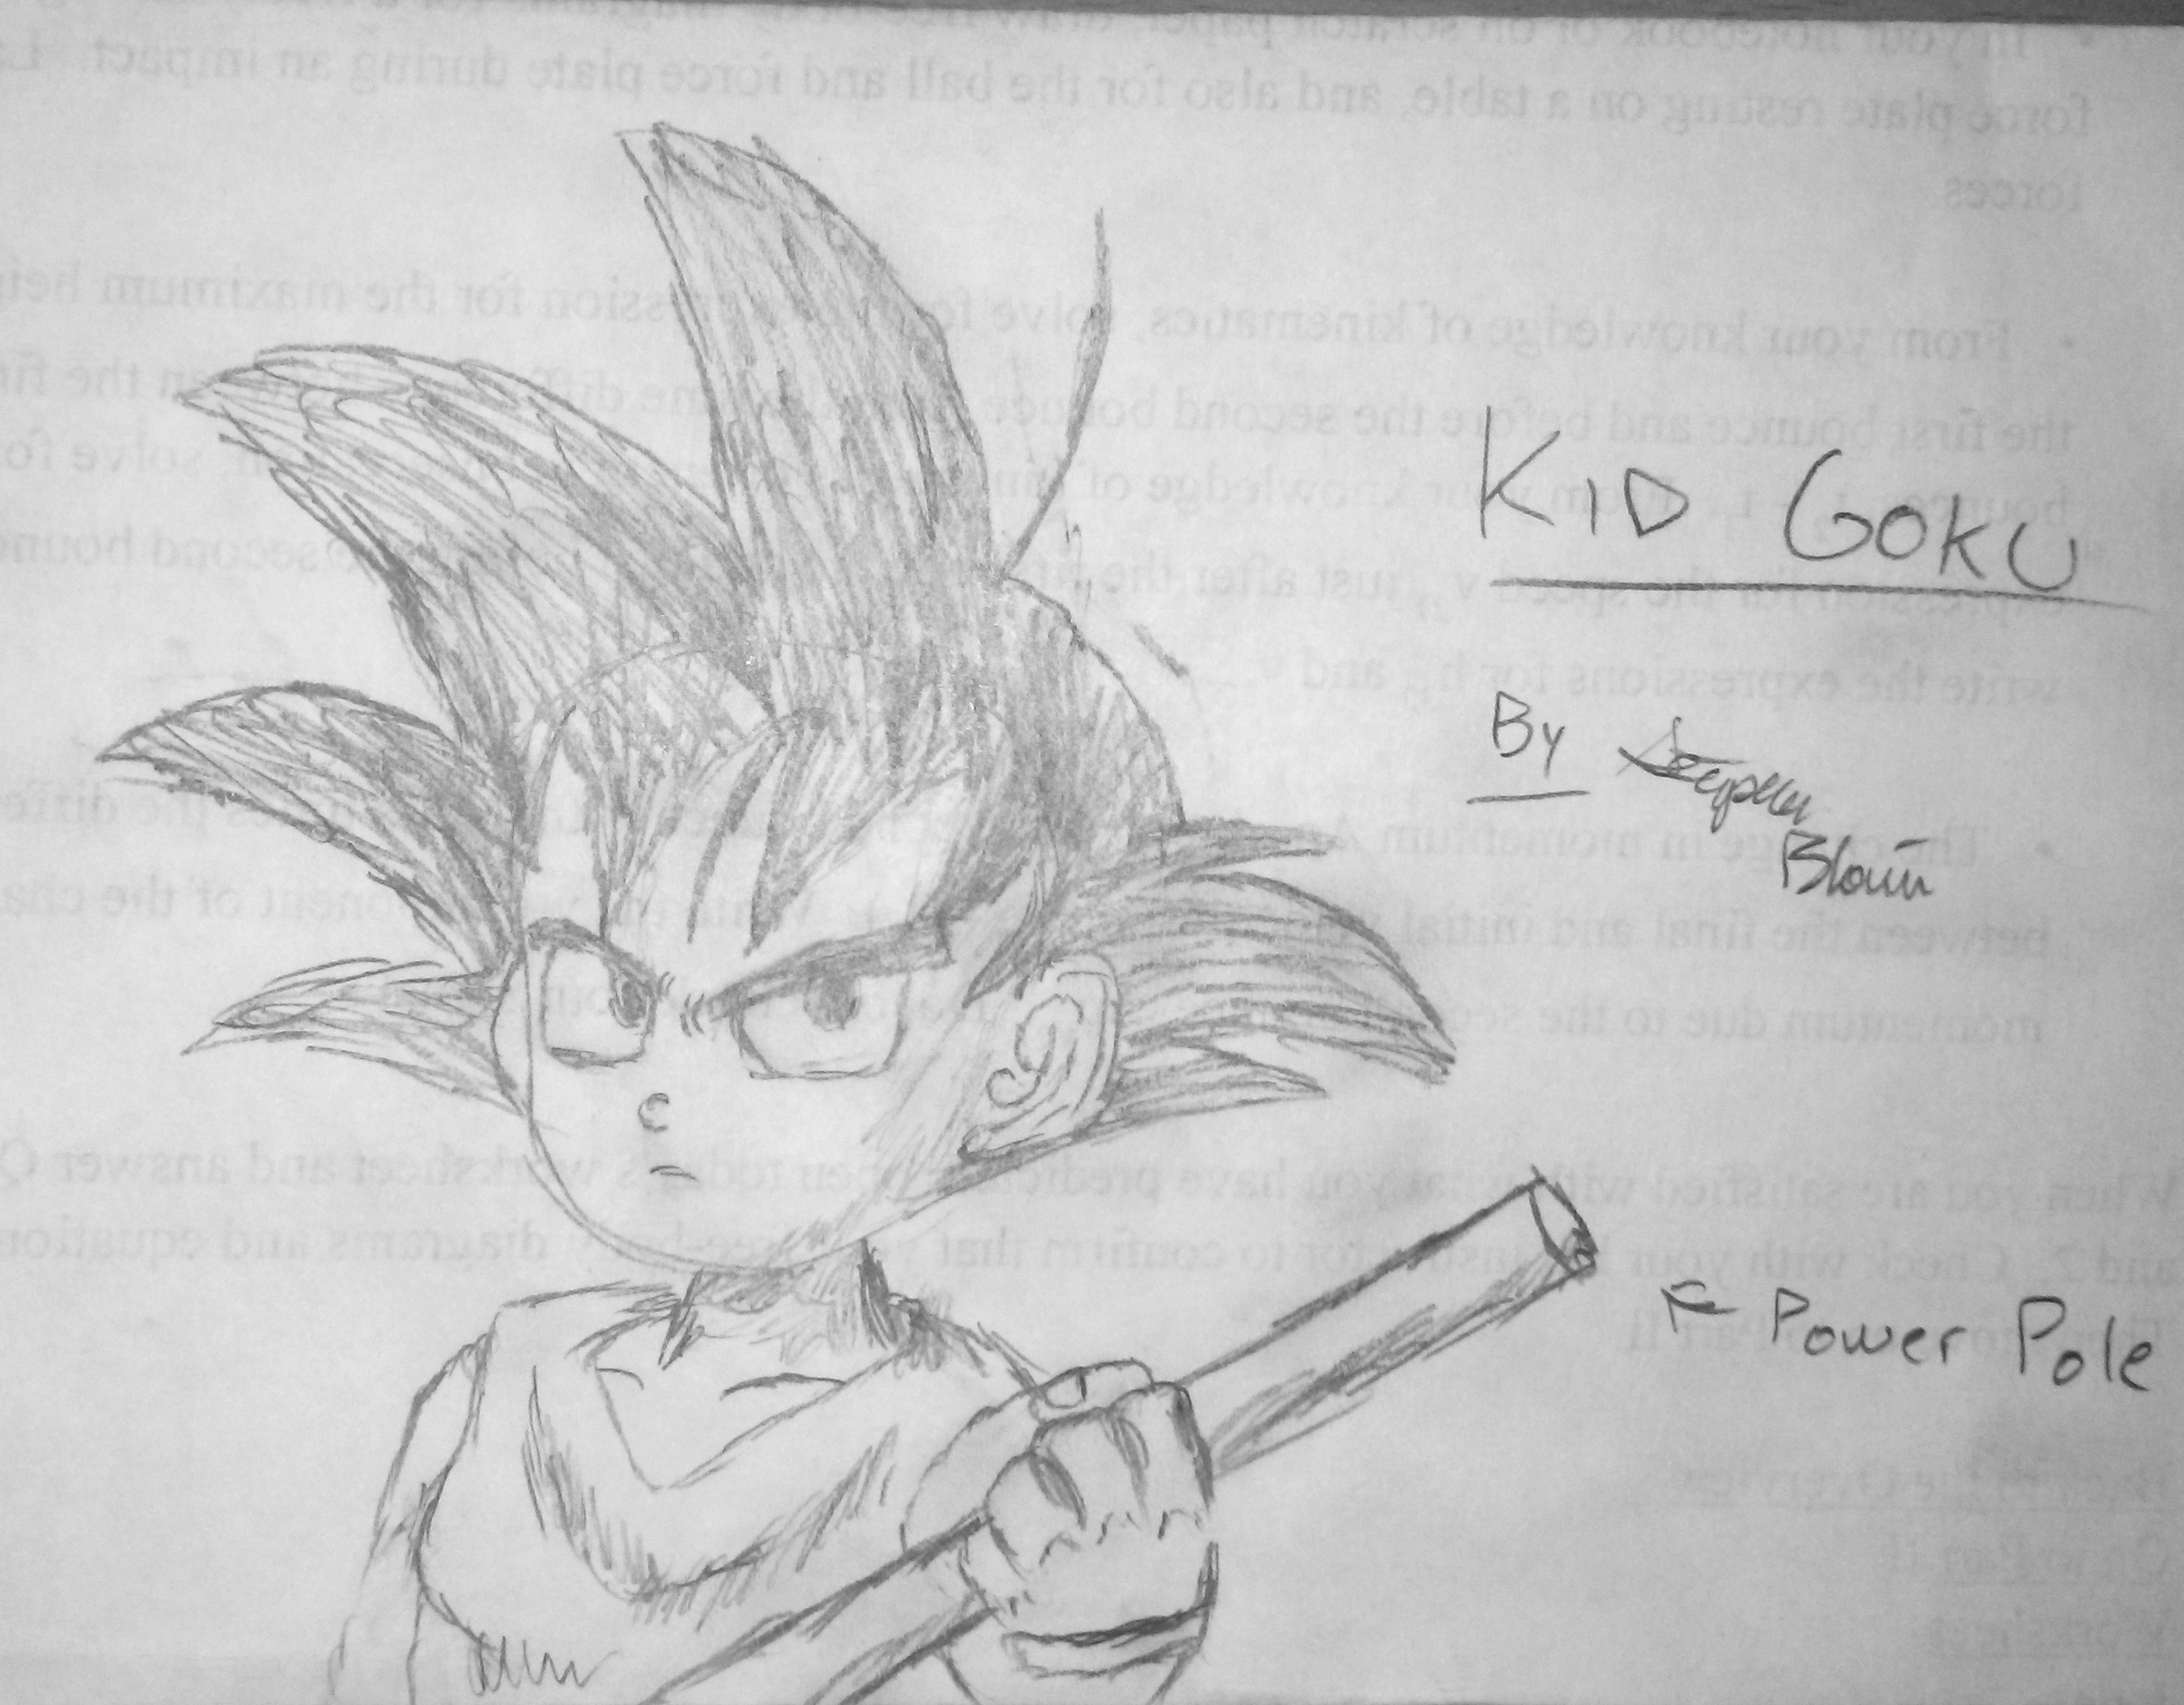 Kid Goku with his Power Pole